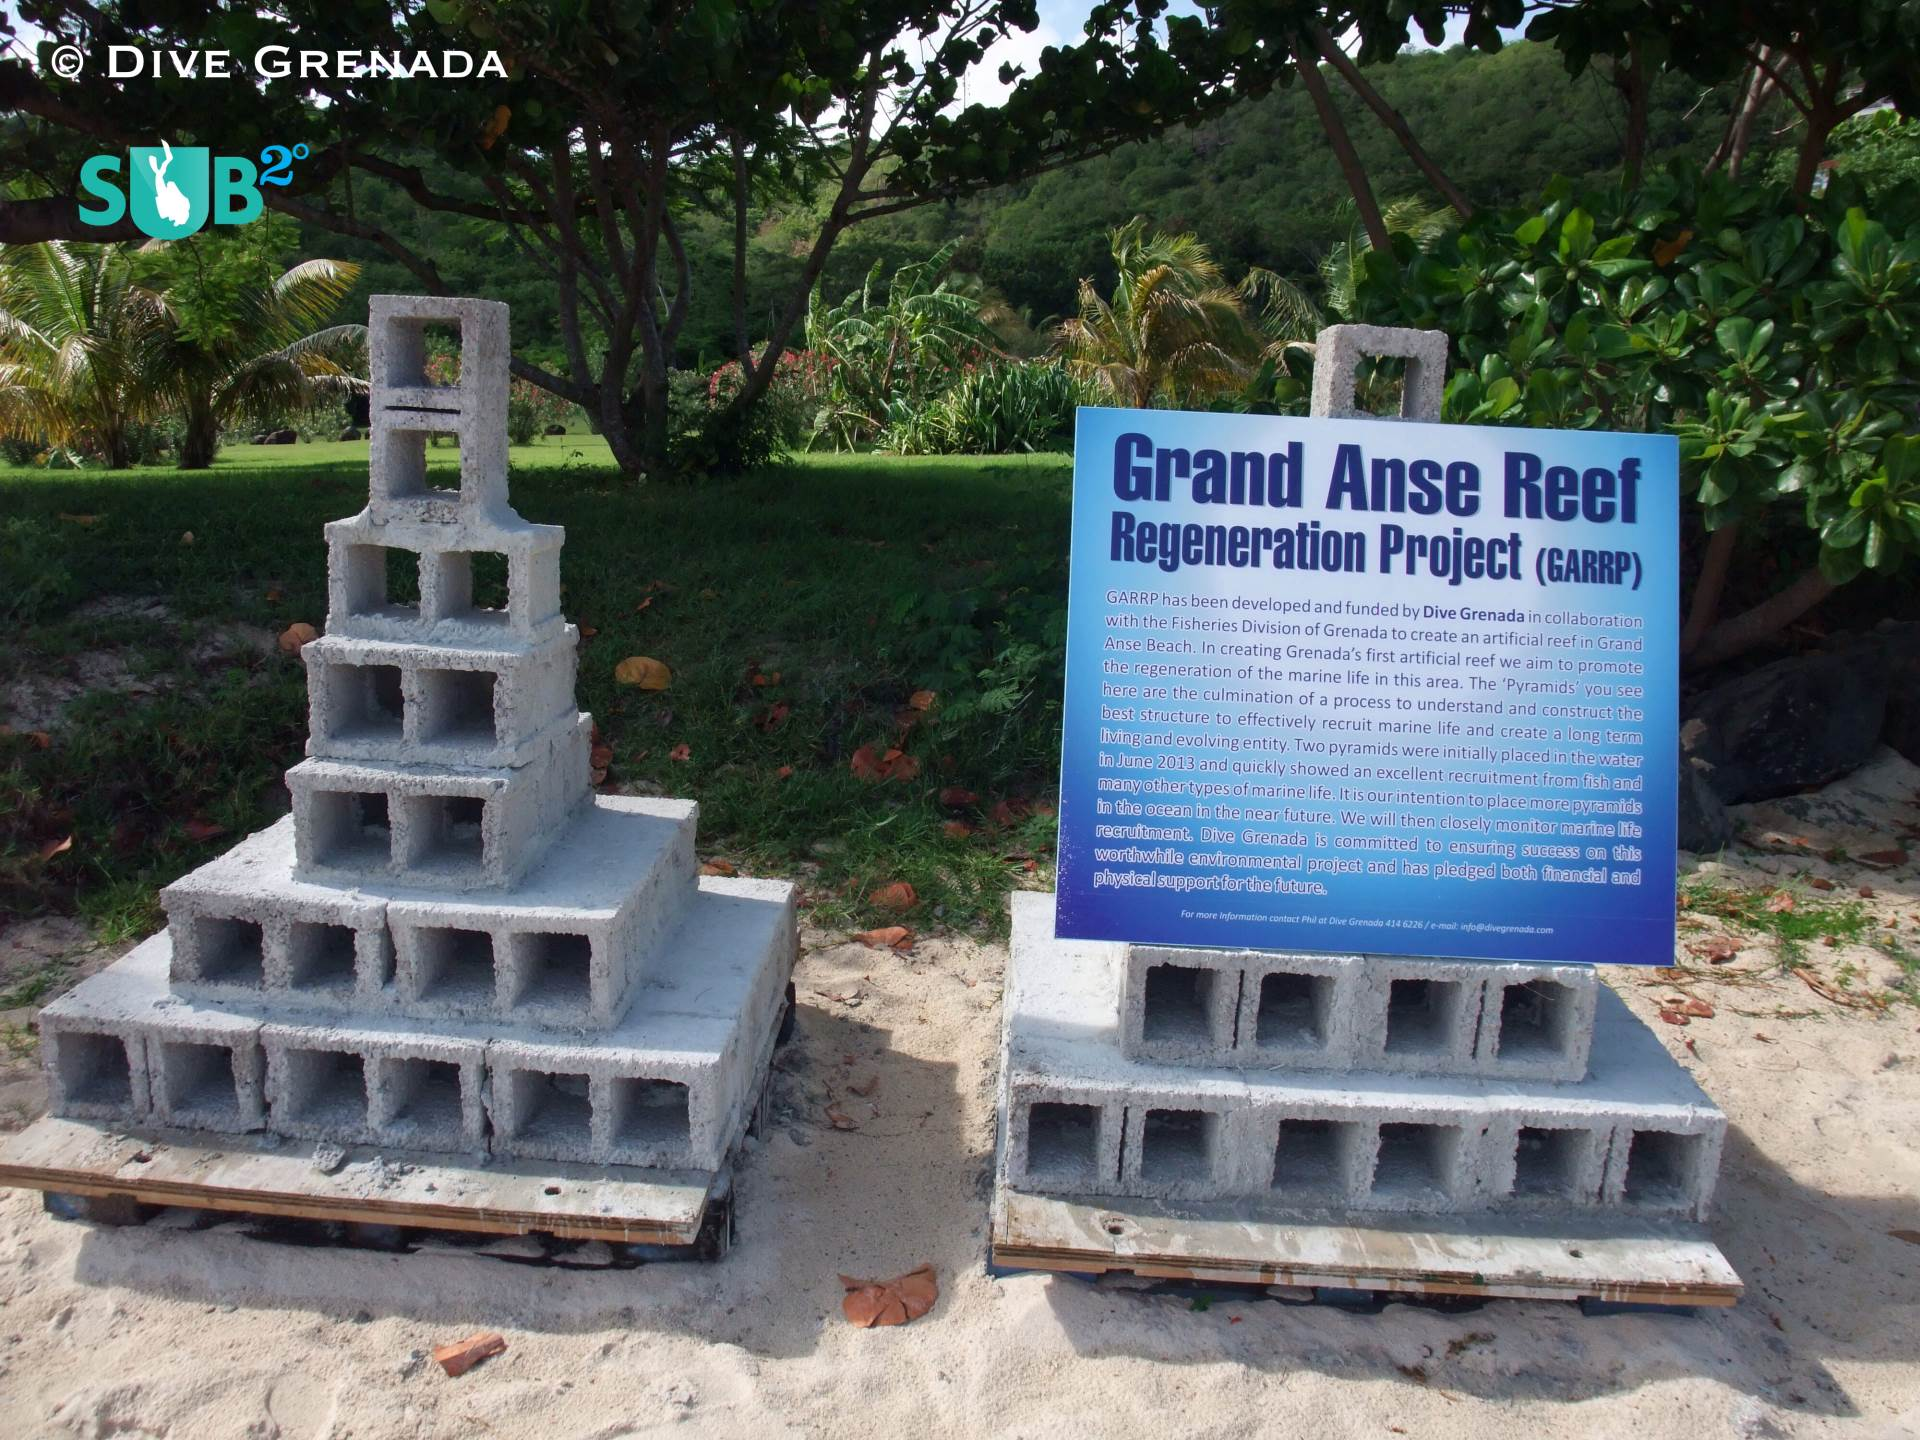 The pyramids prior to placement in Grand Anse Bay. The concrete structures are built on the beach before being floated out and carefully positioned.